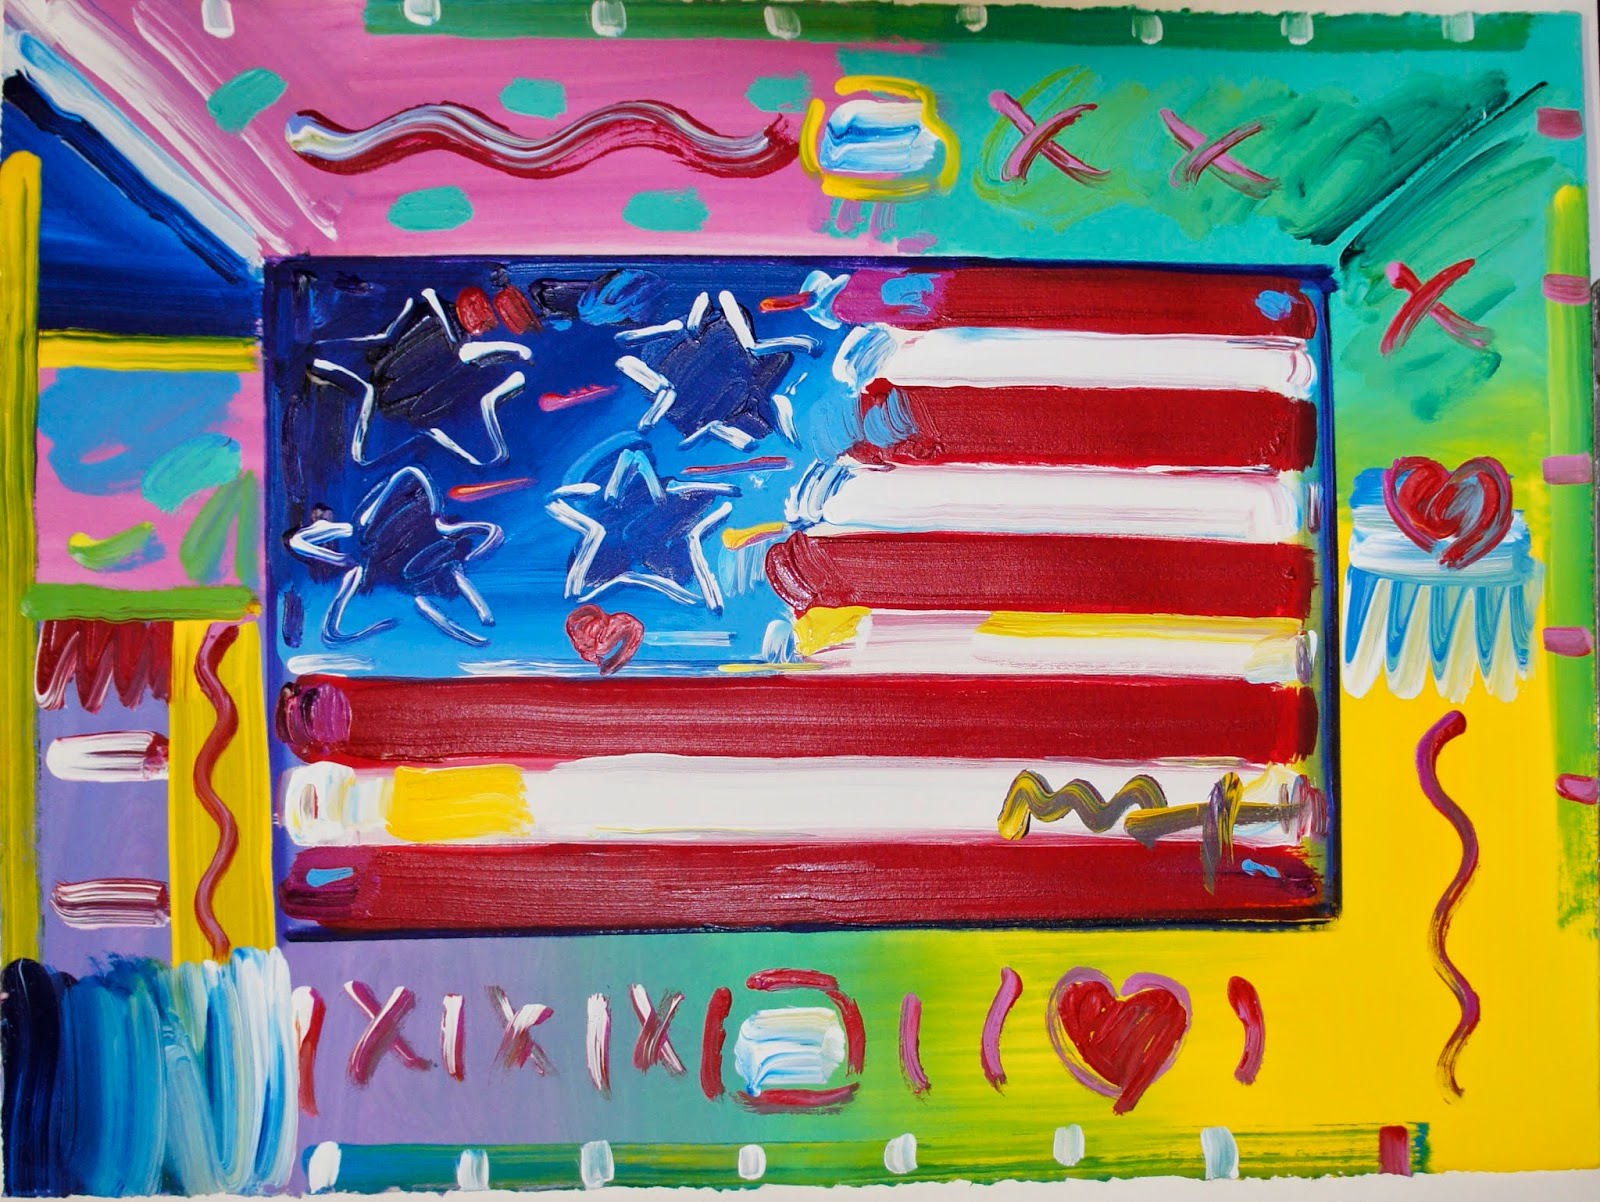 the life and arts of american artist peter max Whether you're planning your next holiday or dreaming of it, our travel and lifestyle blog is a place to find inspiration dream about exotic destinations see the world like never before inspire your inner wanderlust repeat a meeting with norwegian breakaway's hull artist, peter max august 21, 2014 • by: whitney kimmel.